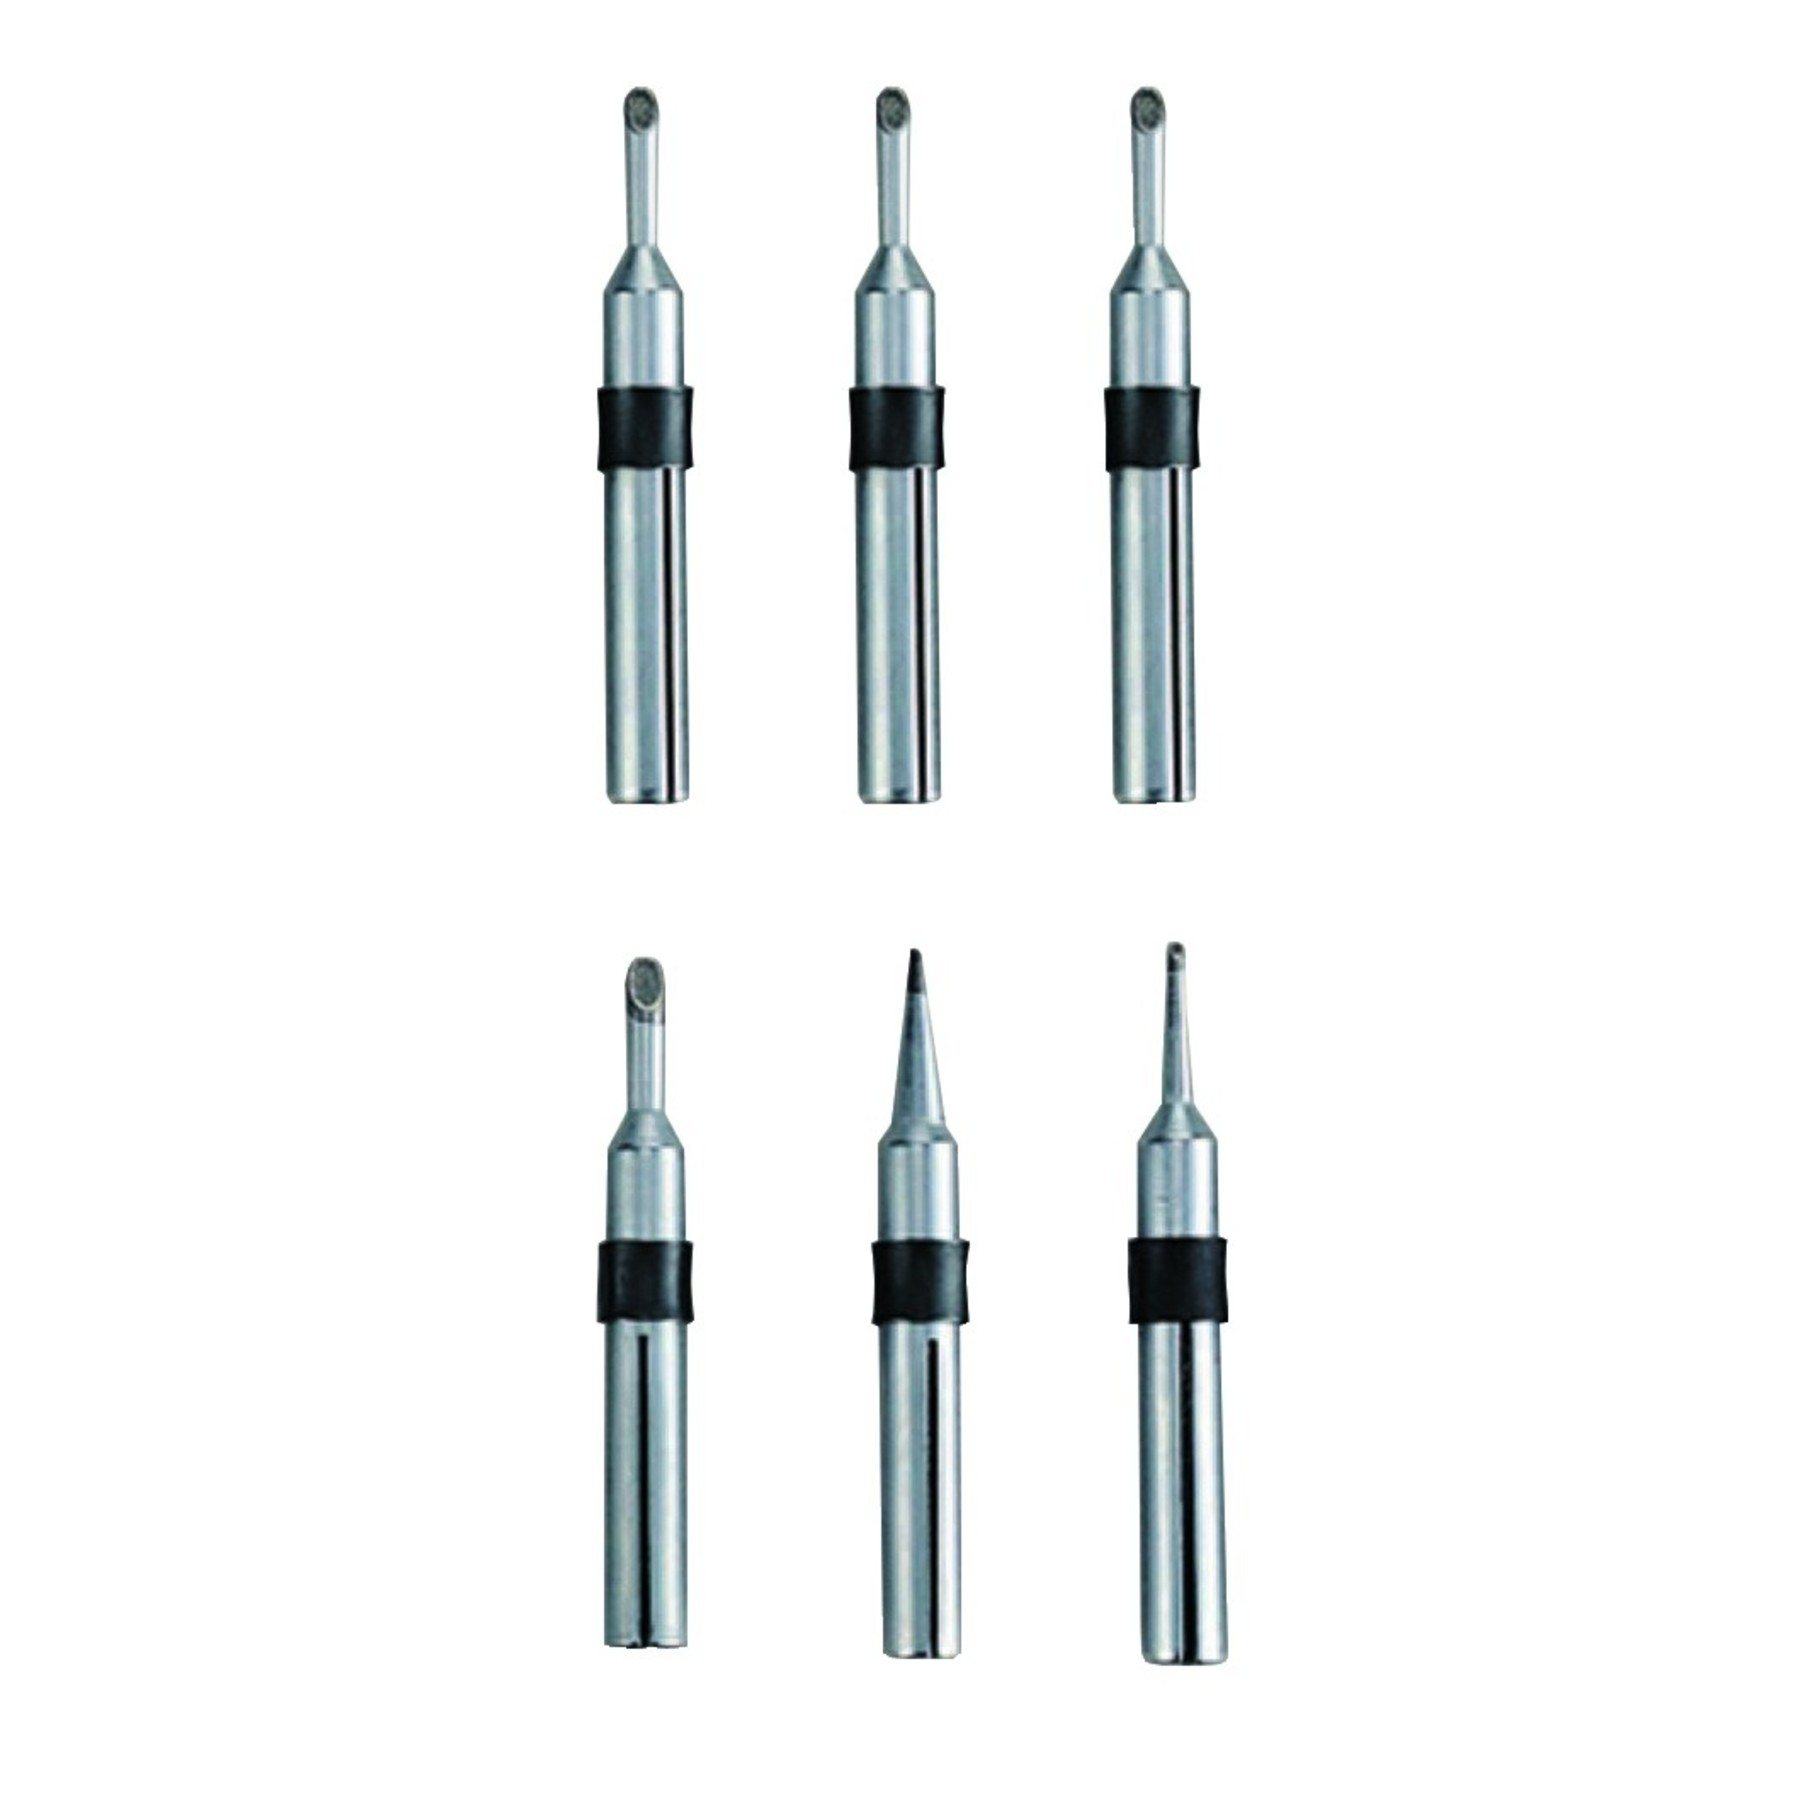 antex type cs tcs tc50 soldering irons replacement tips 3mm chisel pointed ebay. Black Bedroom Furniture Sets. Home Design Ideas